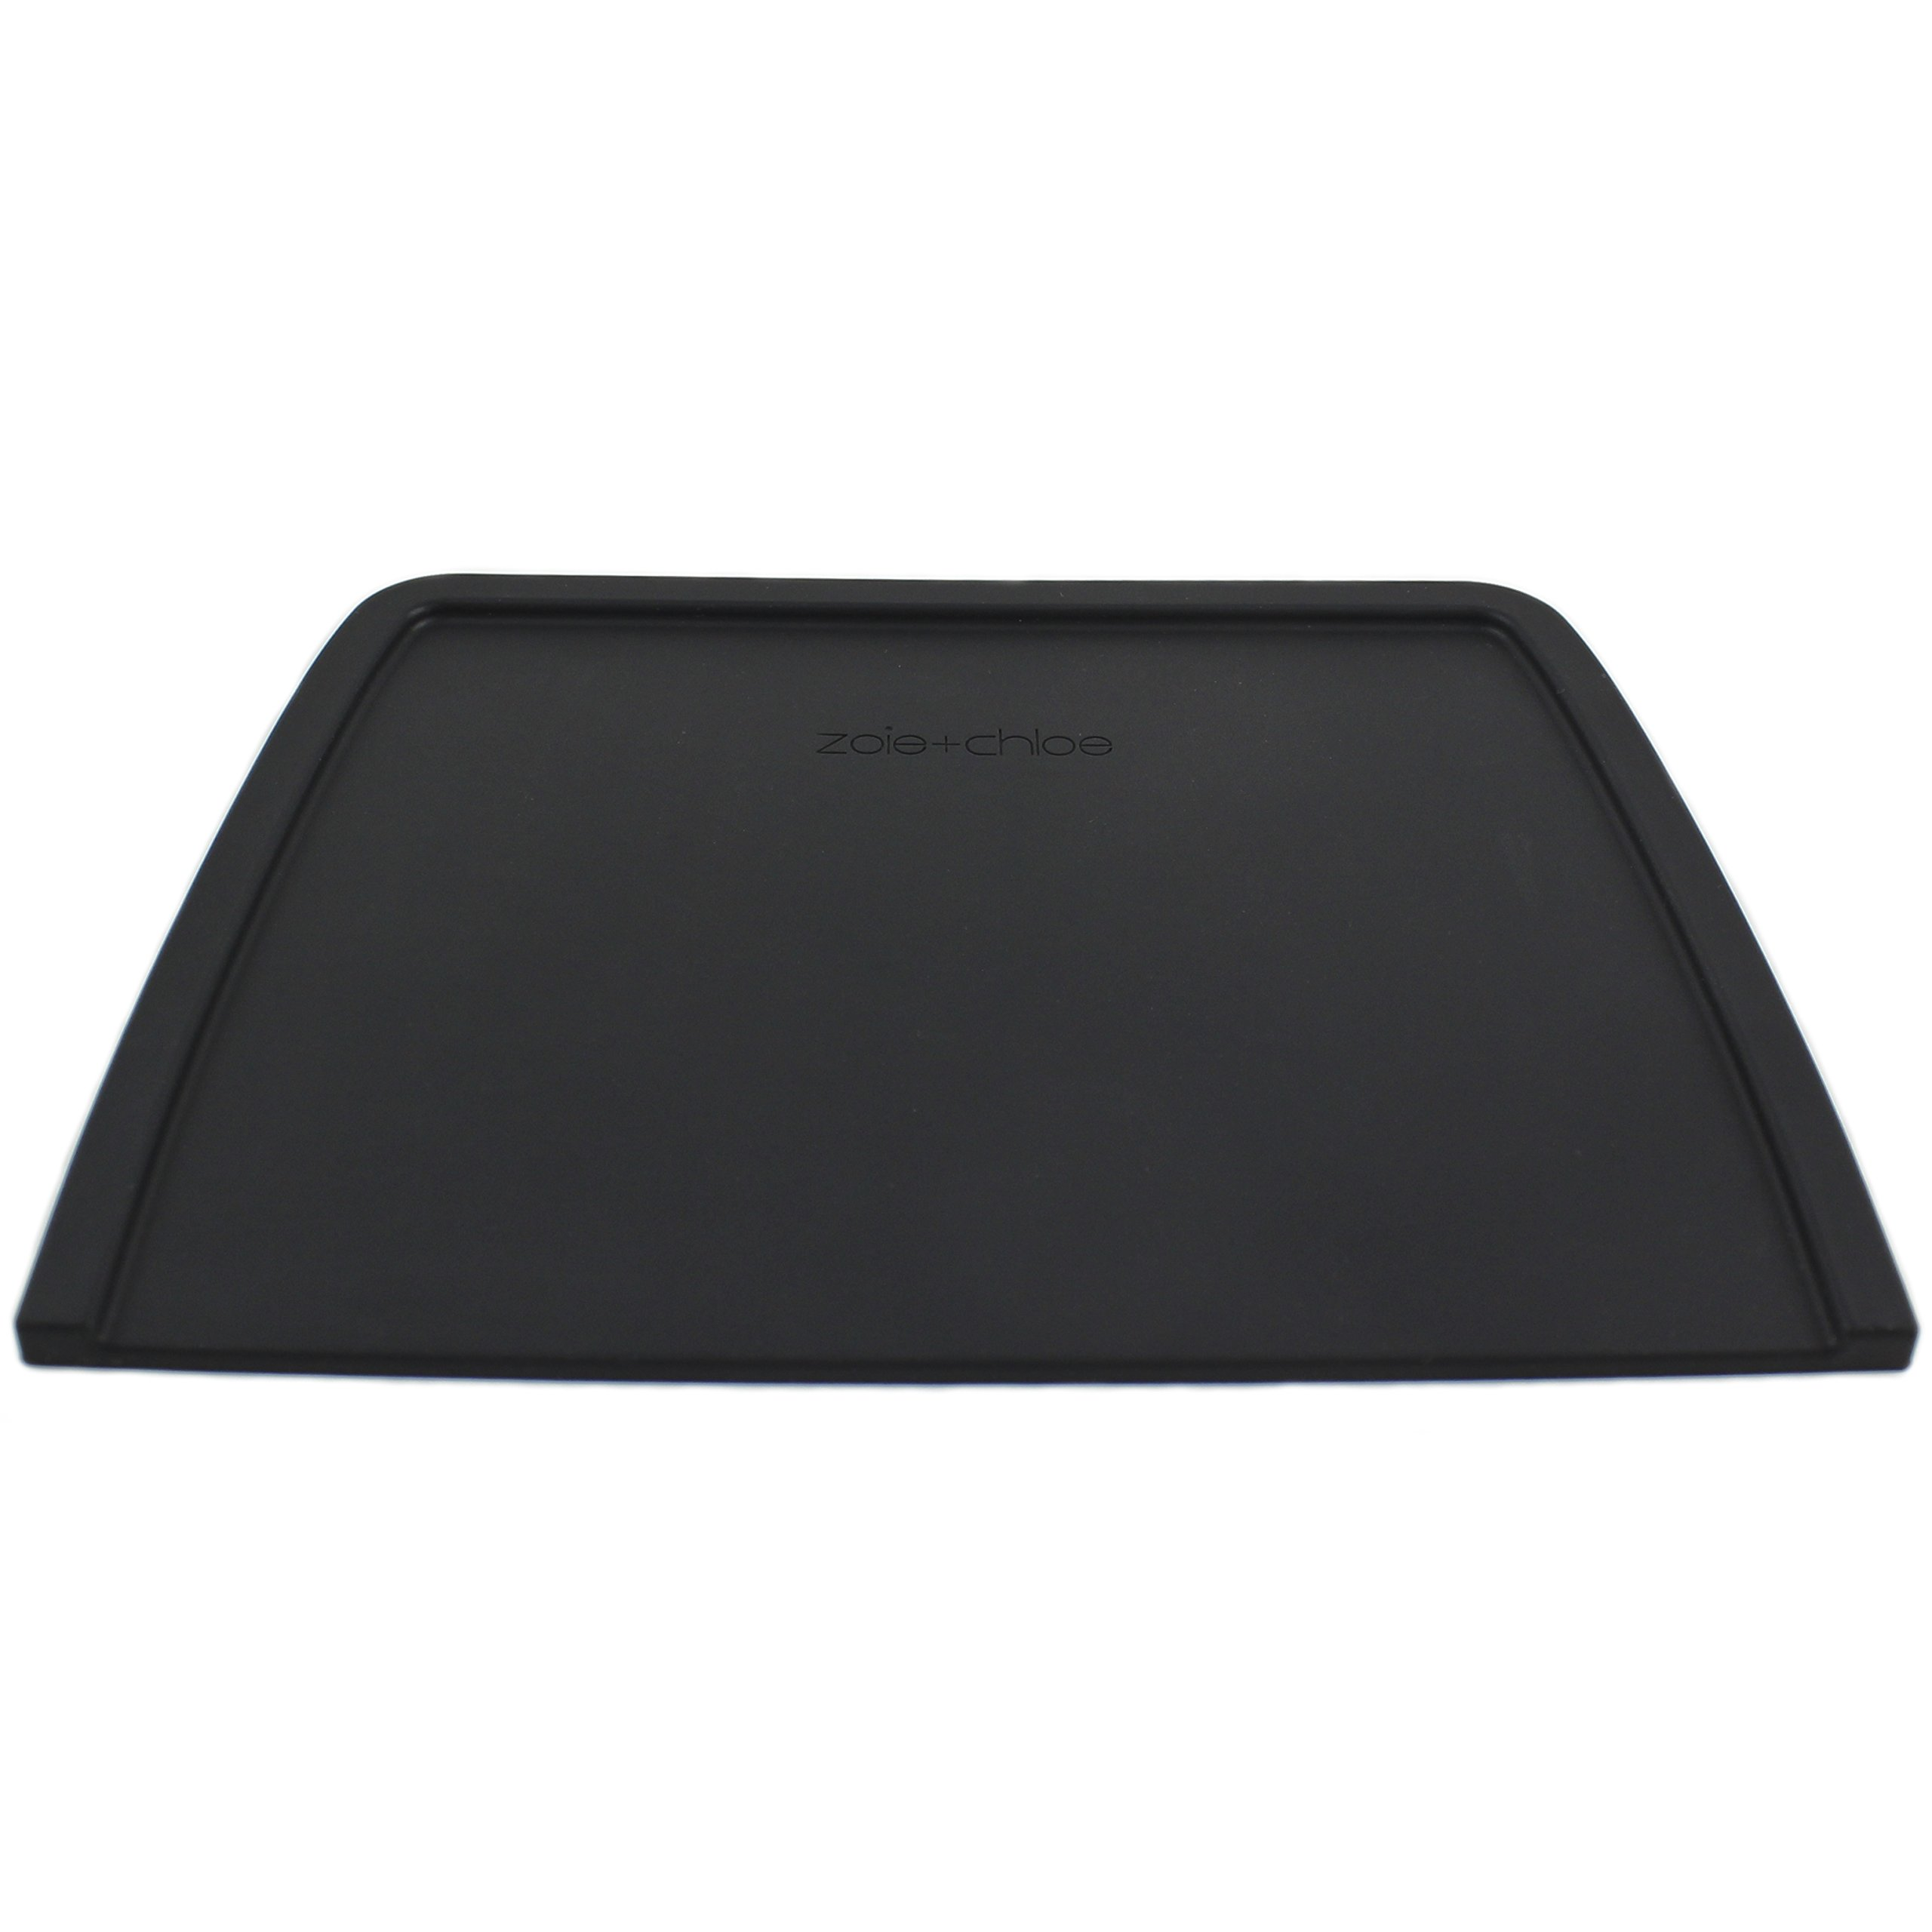 Zoie + Chloe Silicone Coffee Tamping Mat - Espresso Tamper Mat by Zoie + Chloe